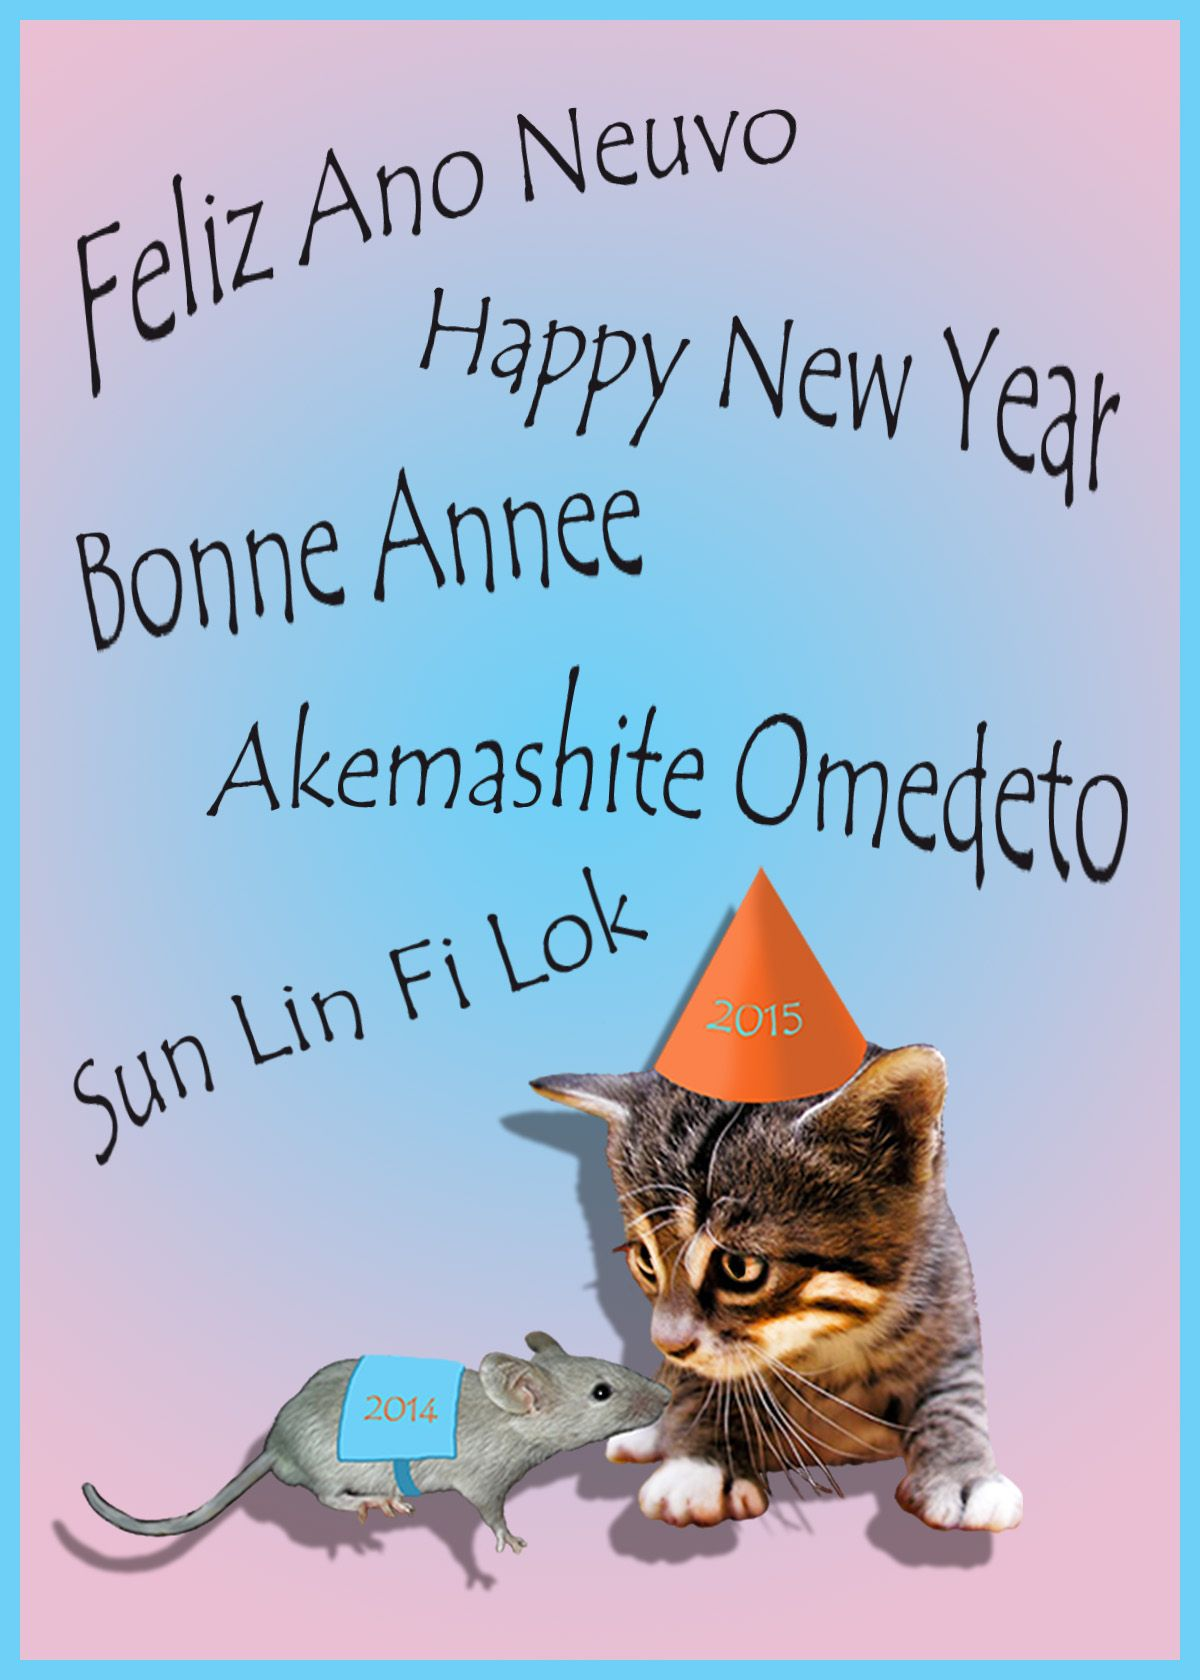 happy new year in spanish language size of this new years card with the greeting in different languages